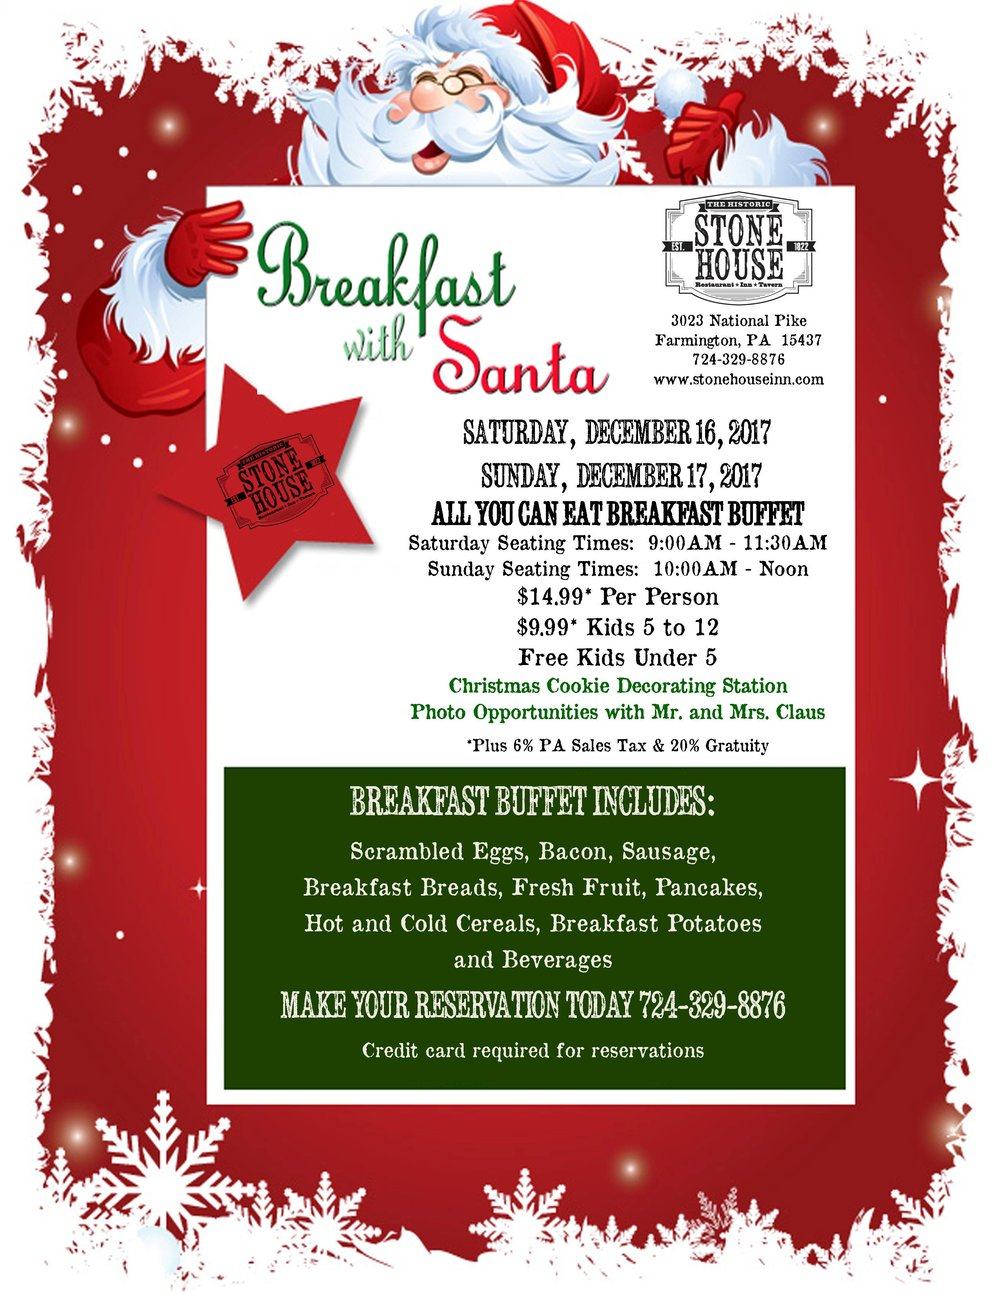 Breakfast with Santa Flyer 2017.jpg